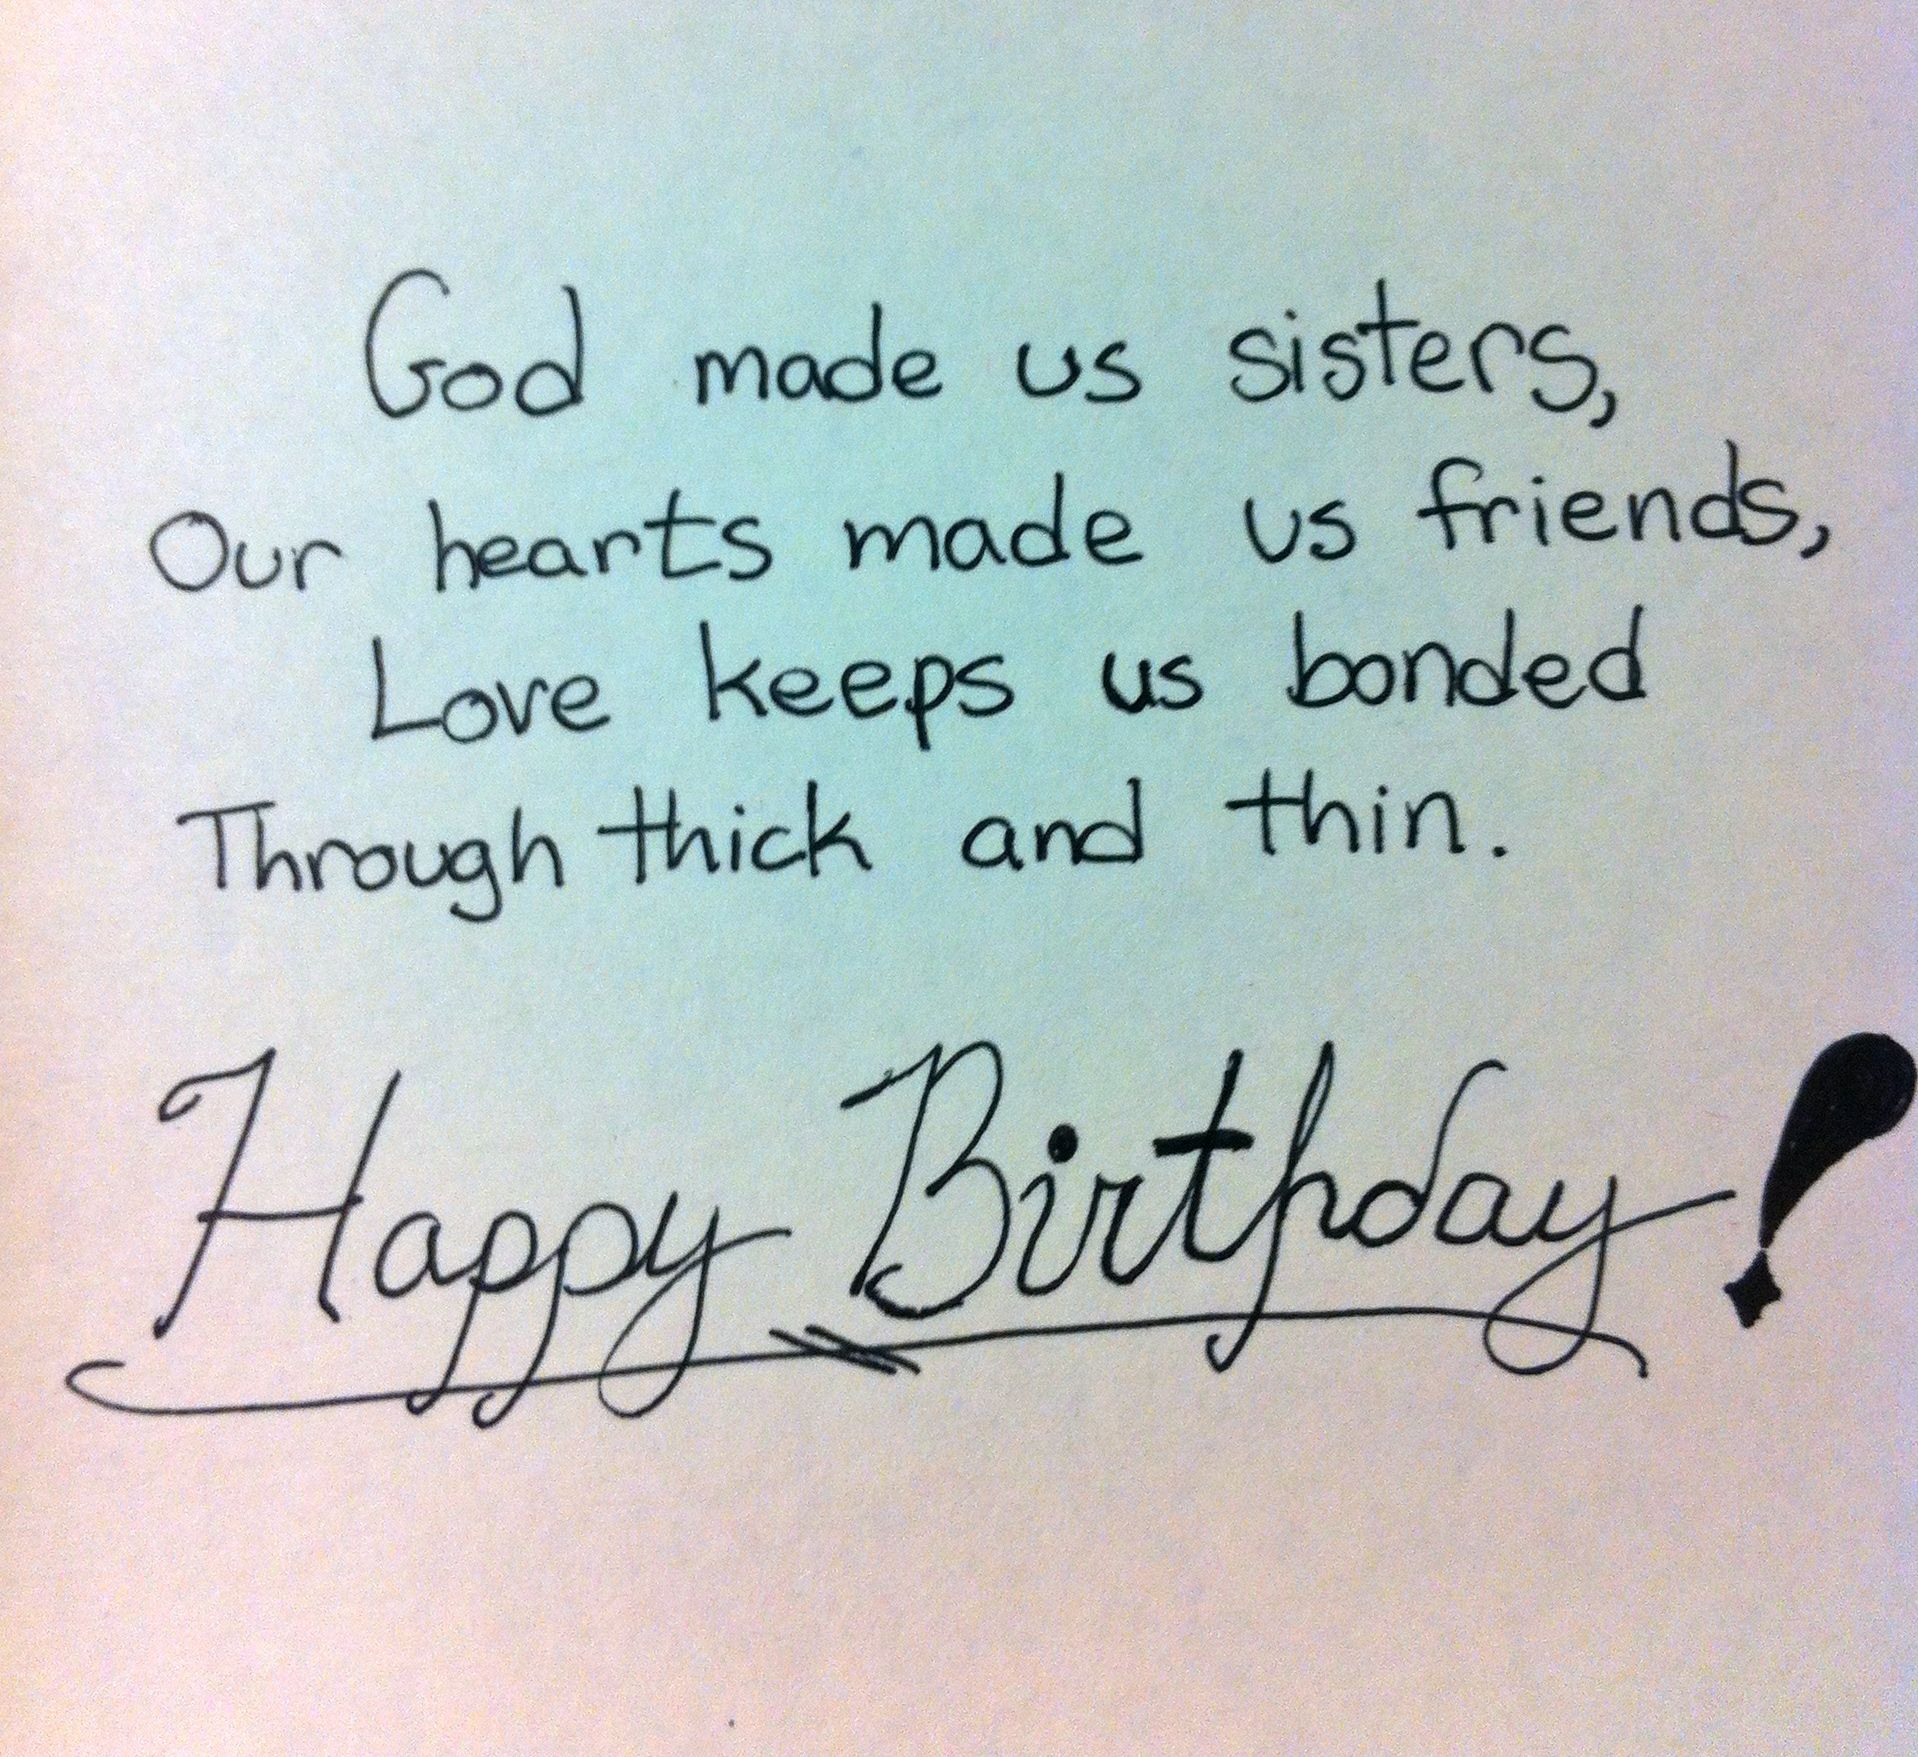 Best Birthday Wishes For A Sister Happy Birthday Sister Quotes Sister Birthday Quotes Sister Quotes Funny